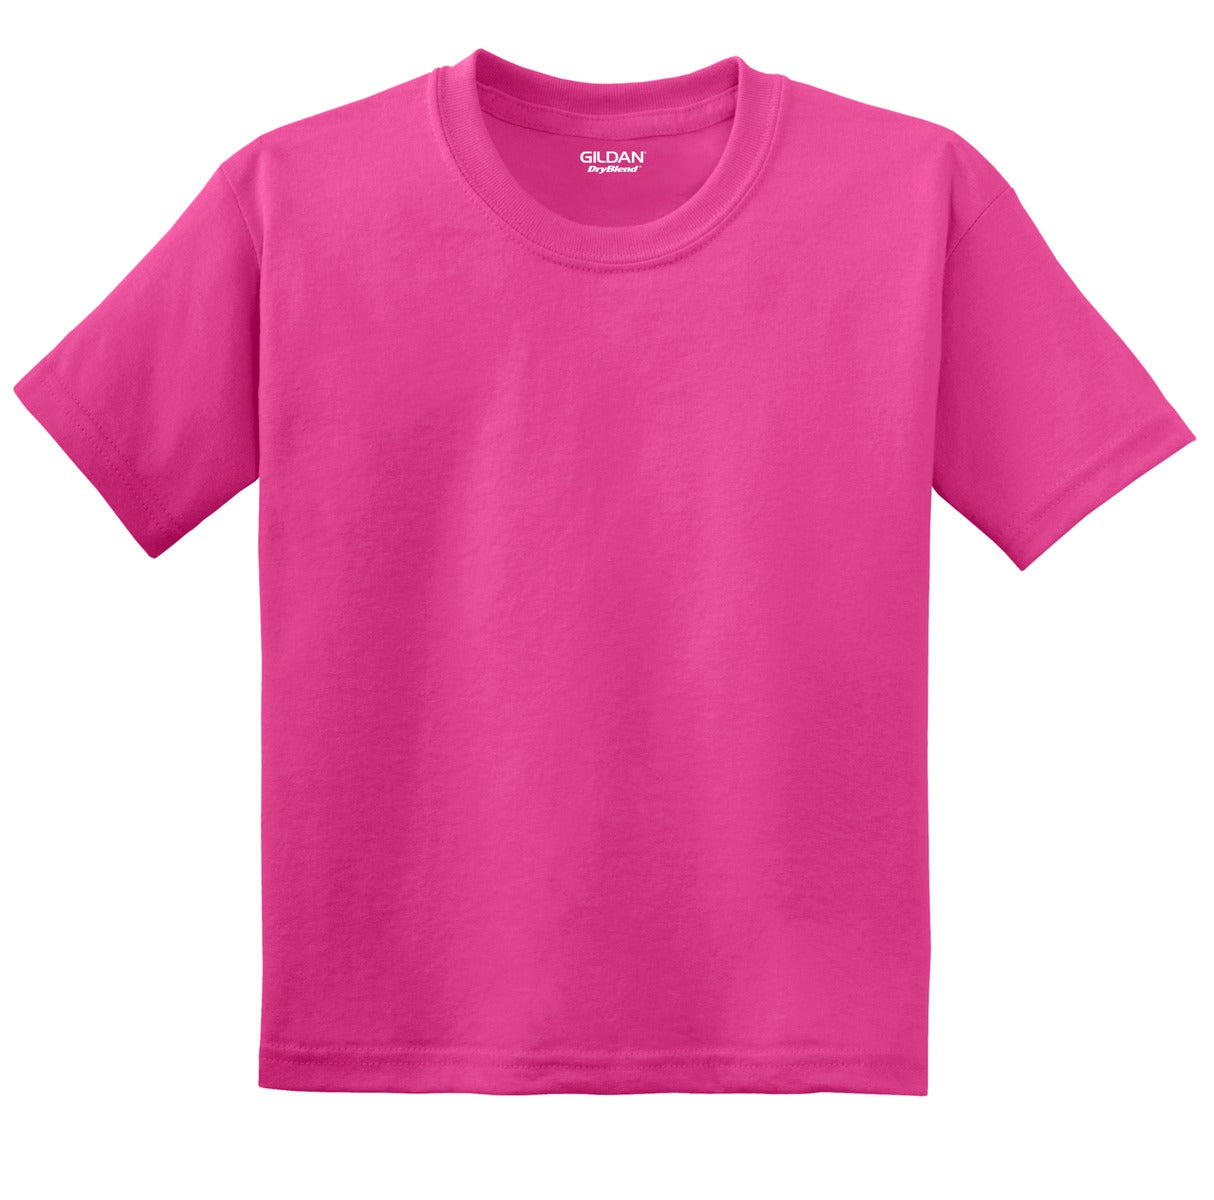 Heliconia Gildan Youth DryBlend 50 Cotton/50 Poly T-Shirt.